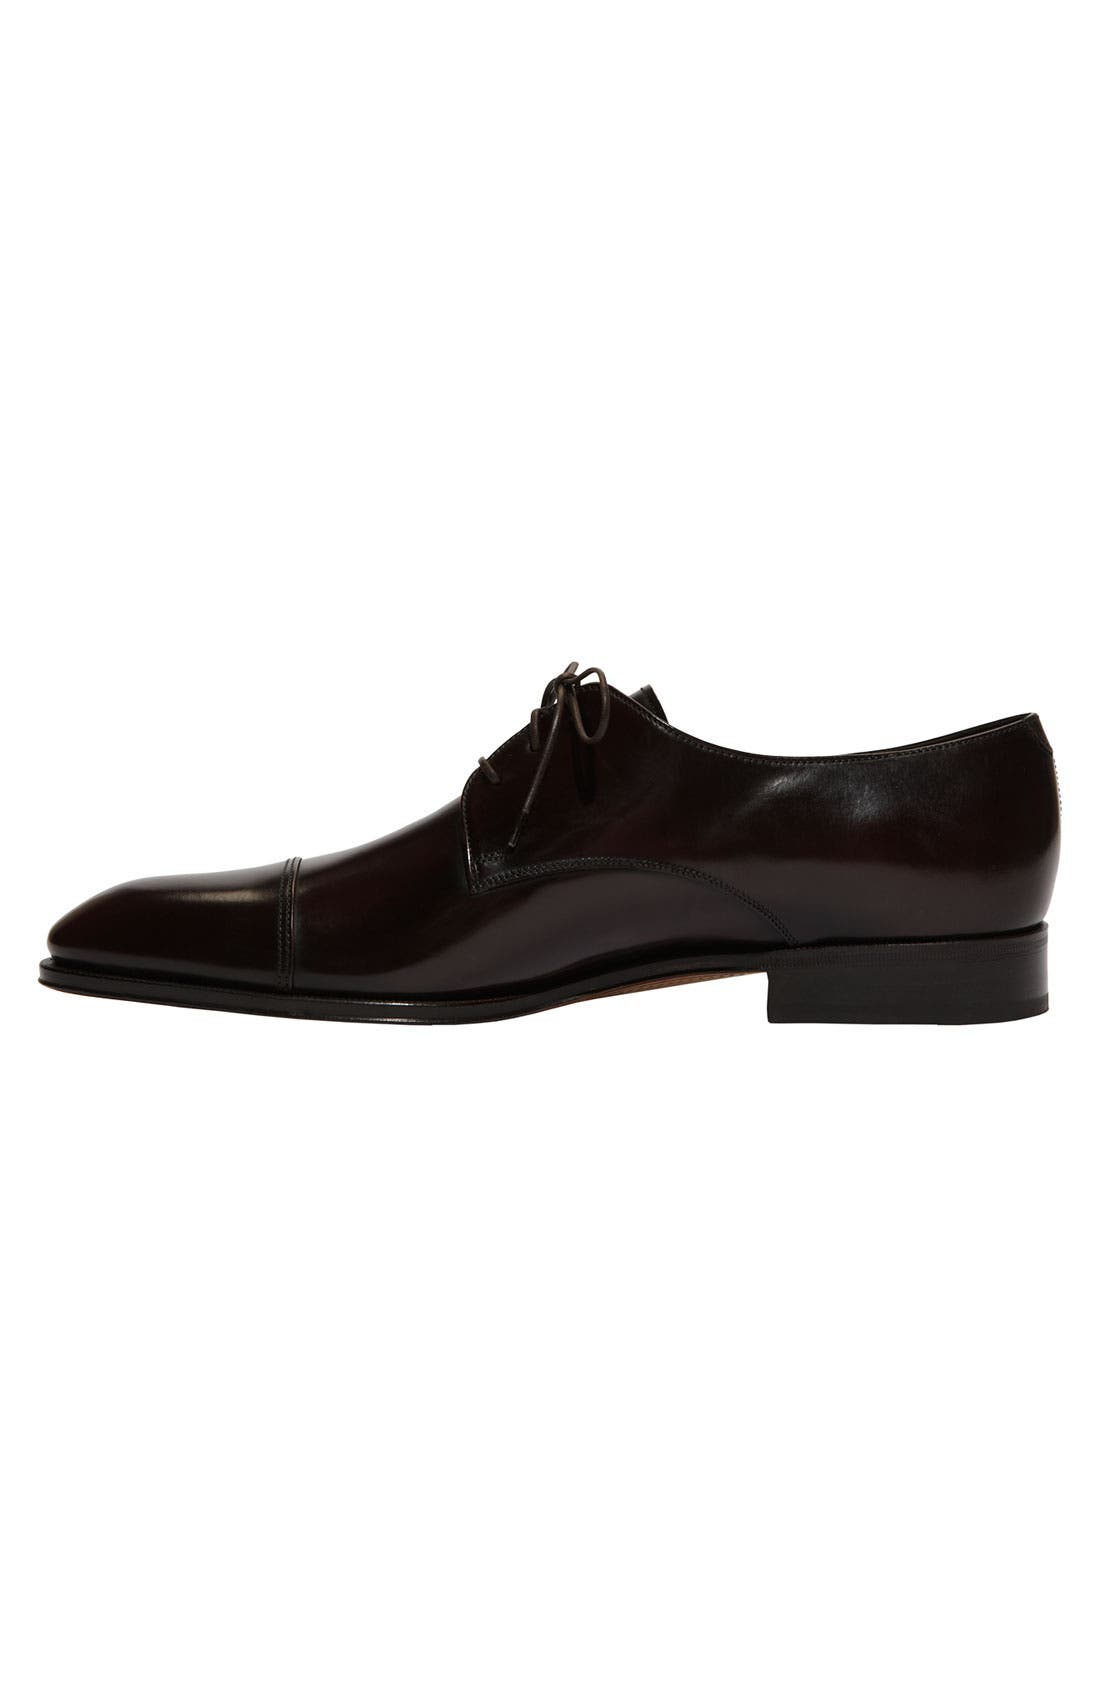 Alternate Image 2  - Salvatore Ferragamo 'Faraone' Cap Toe Oxford (Men)